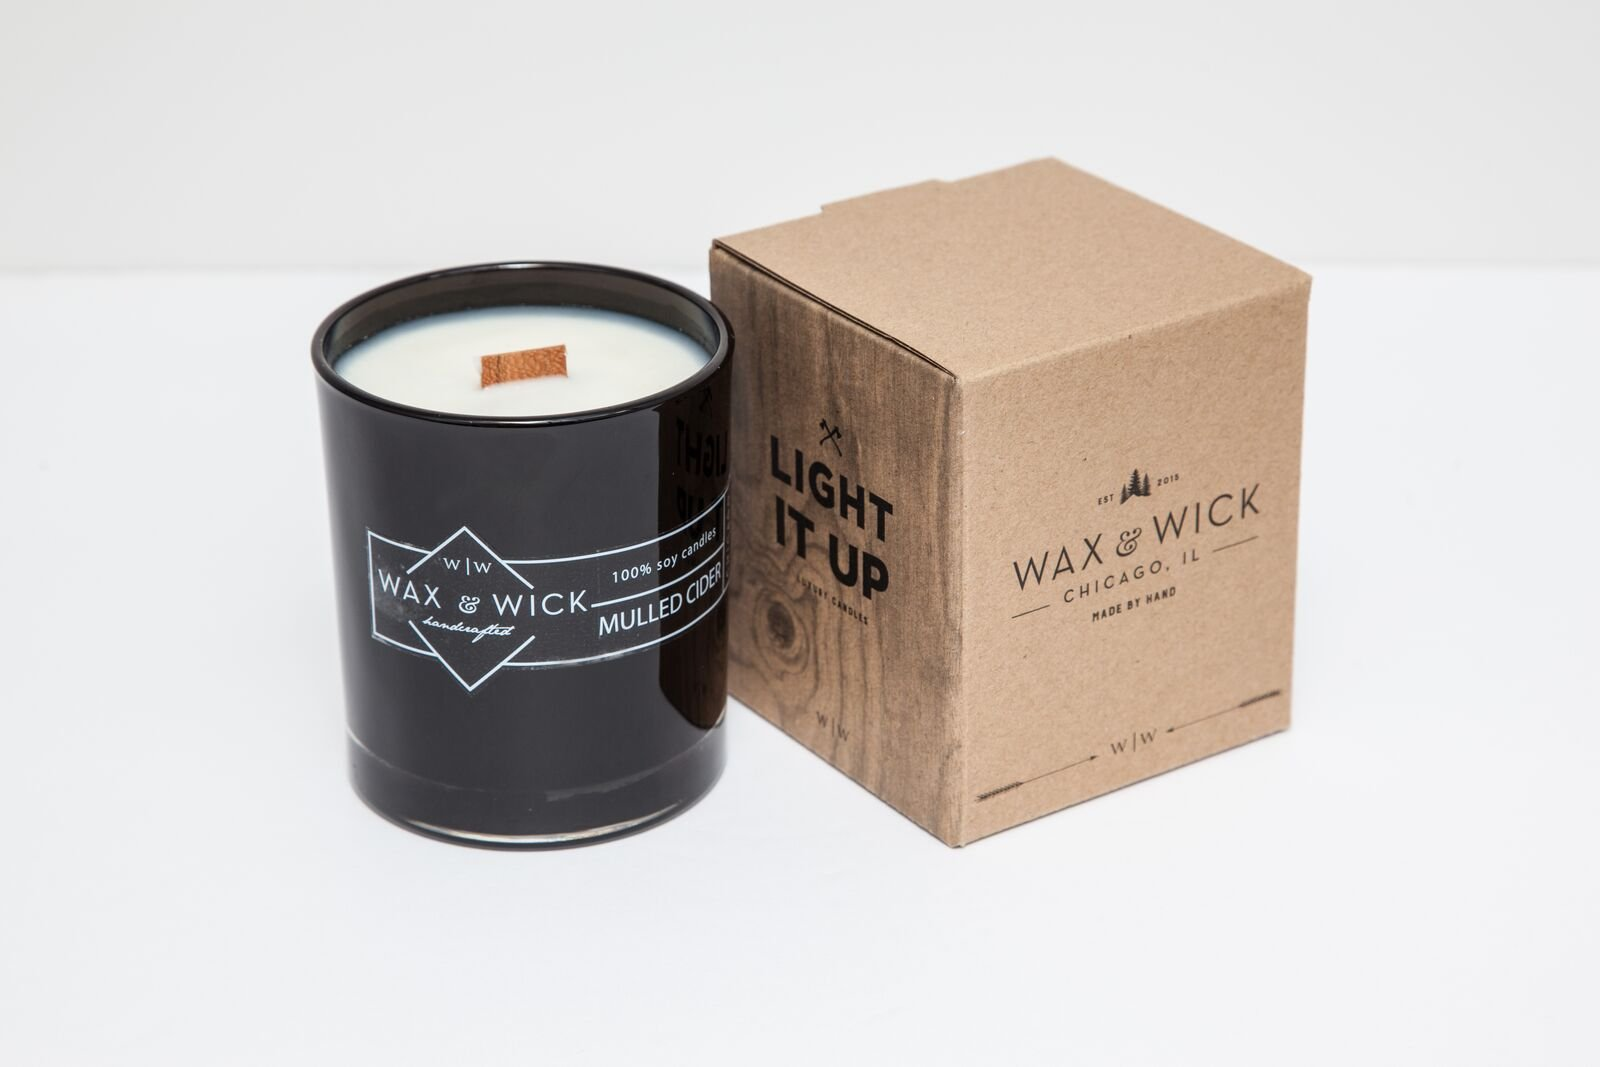 Scented Soy Candle: 100% Pure Soy Wax with Wood Double Wick | Burns Cleanly up to 60 Hrs | Mulled Cider Scent - Notes of Apple, Nutmeg, Vanilla, Caramel. | 12 oz Black Jar by Wax and Wick by Wax & Wick (Image #4)